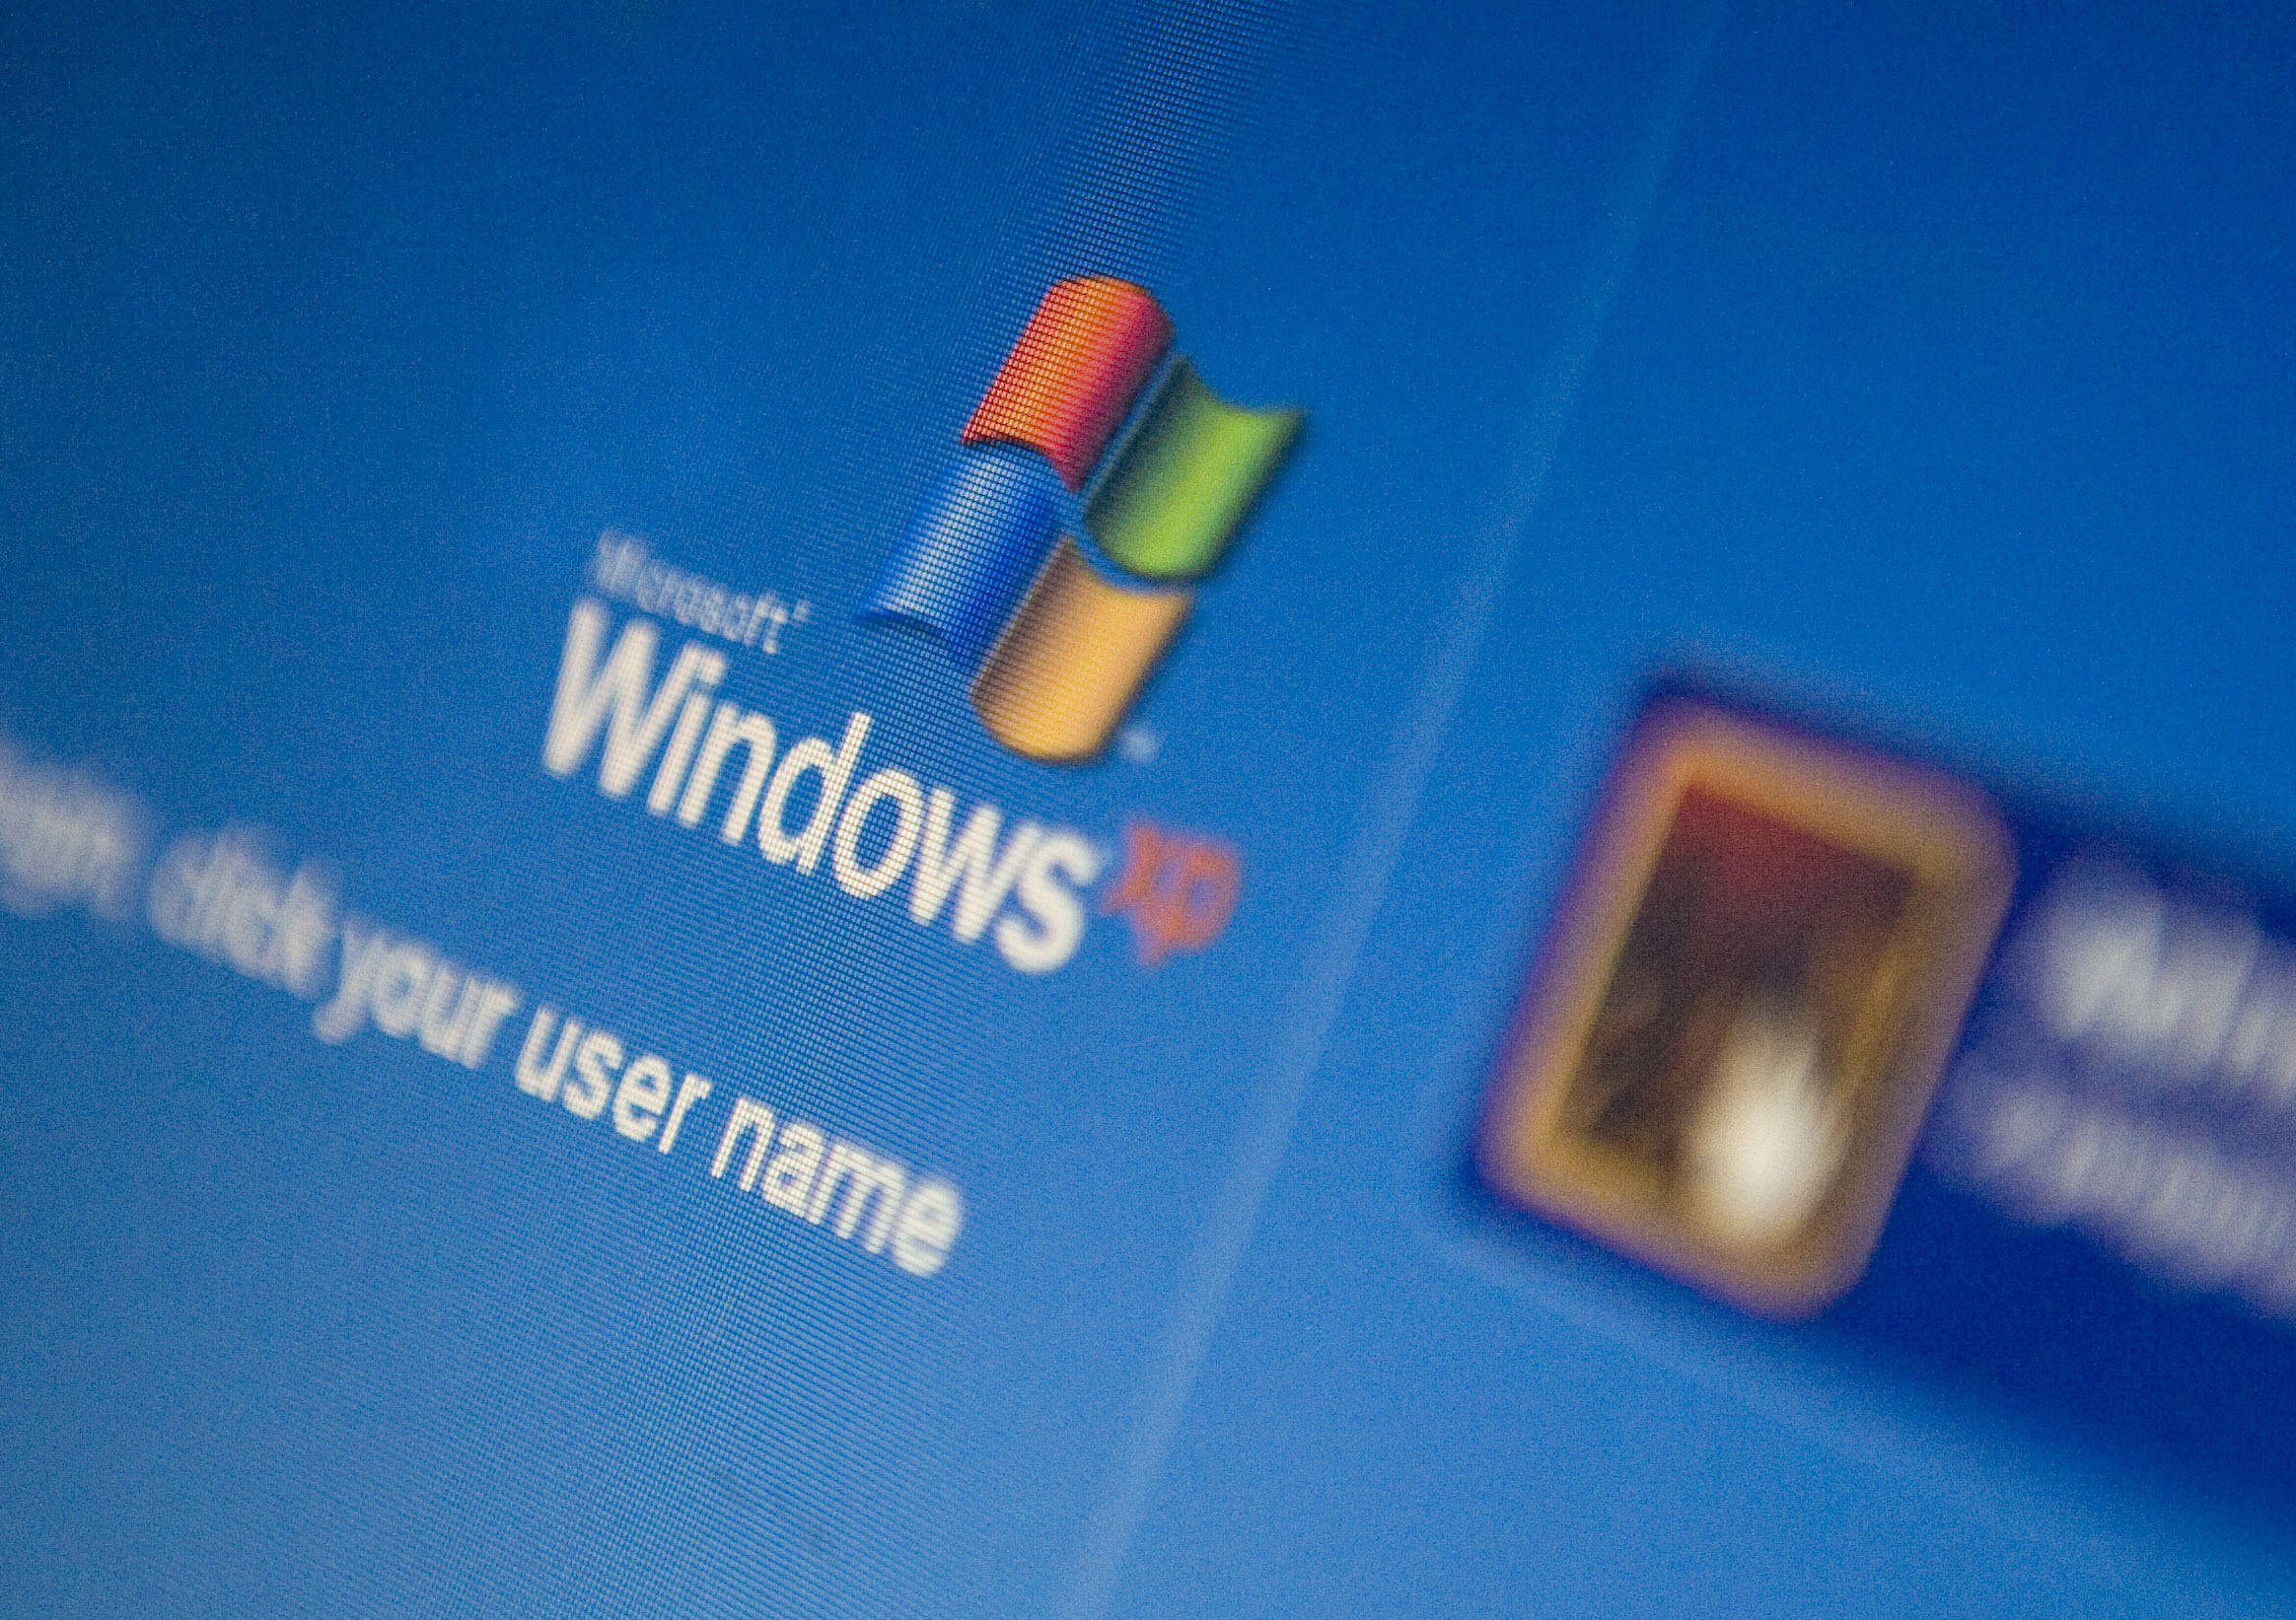 The Microsoft Windows XP log-in screen is displayed on a lap